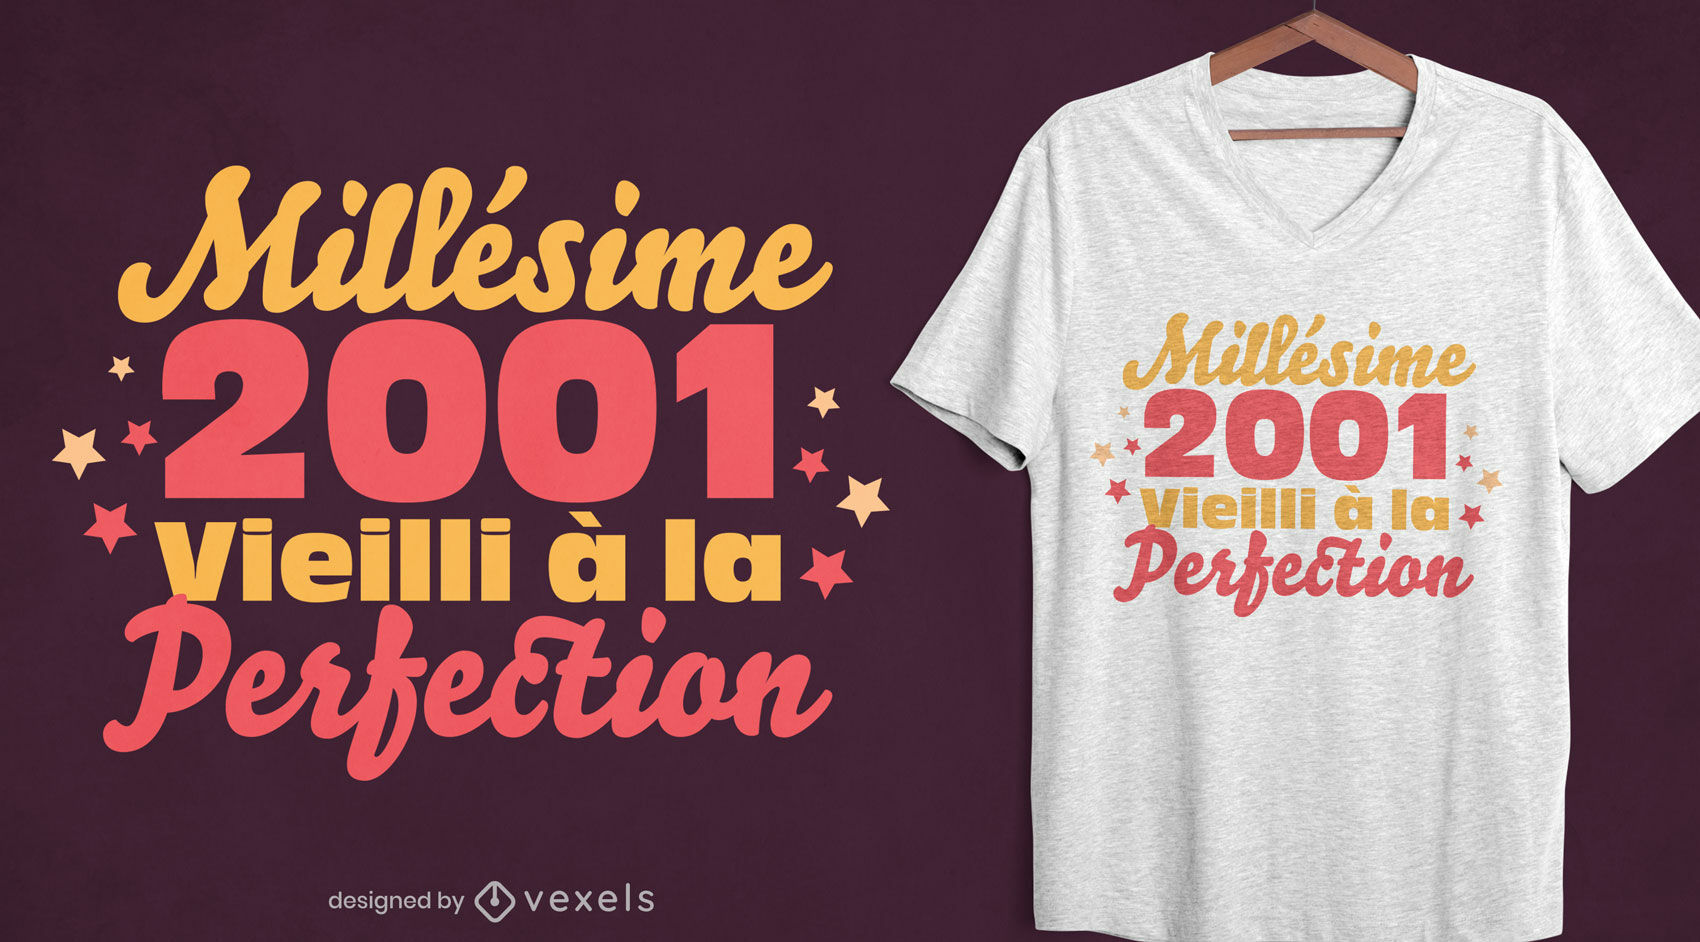 Aged to perfection t-shirt design